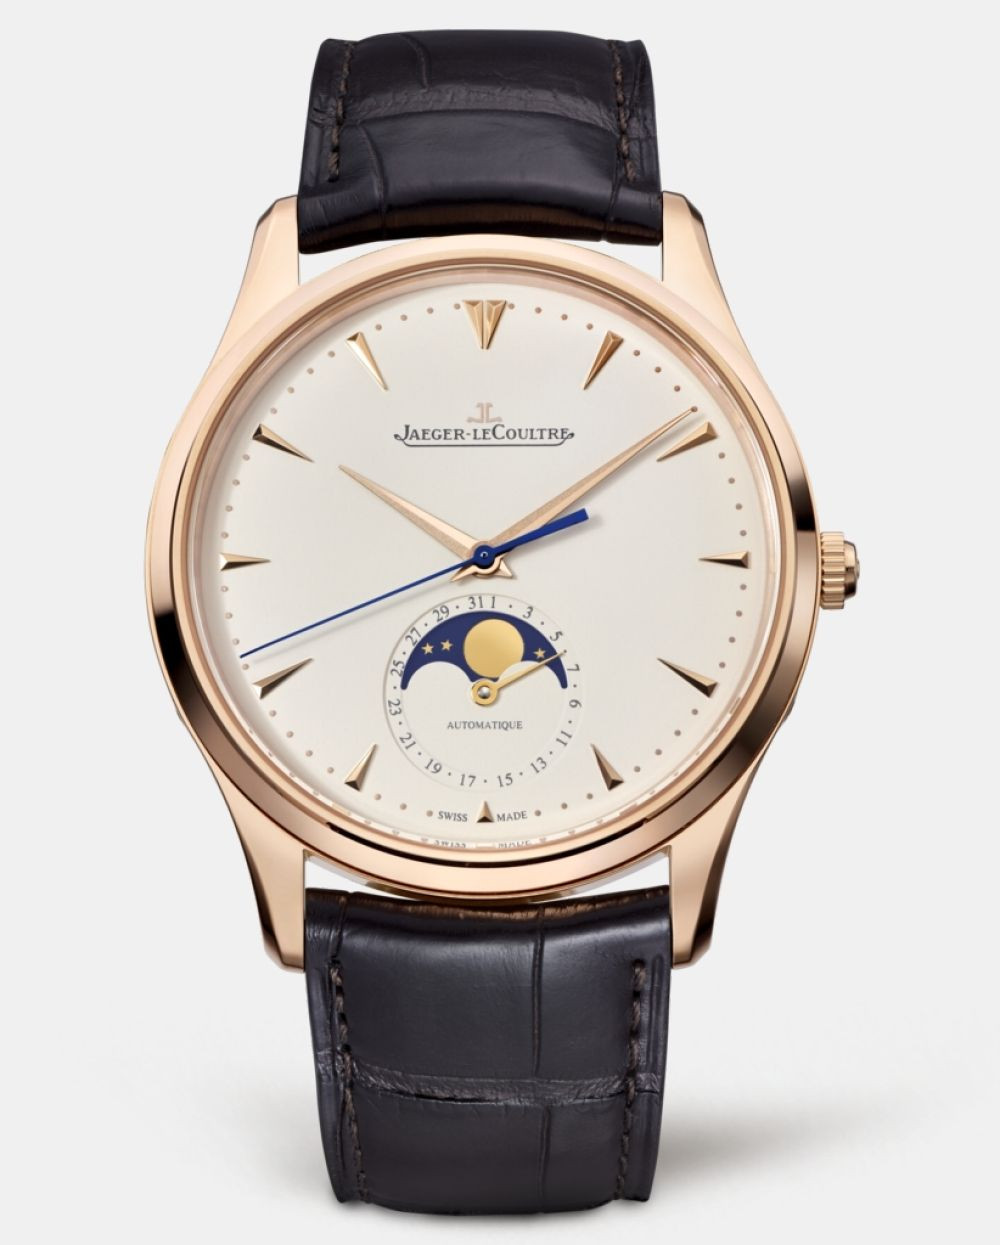 Jaeger-LeCoultre: Jaeger LeCoultre Master Ultra Thin Moon